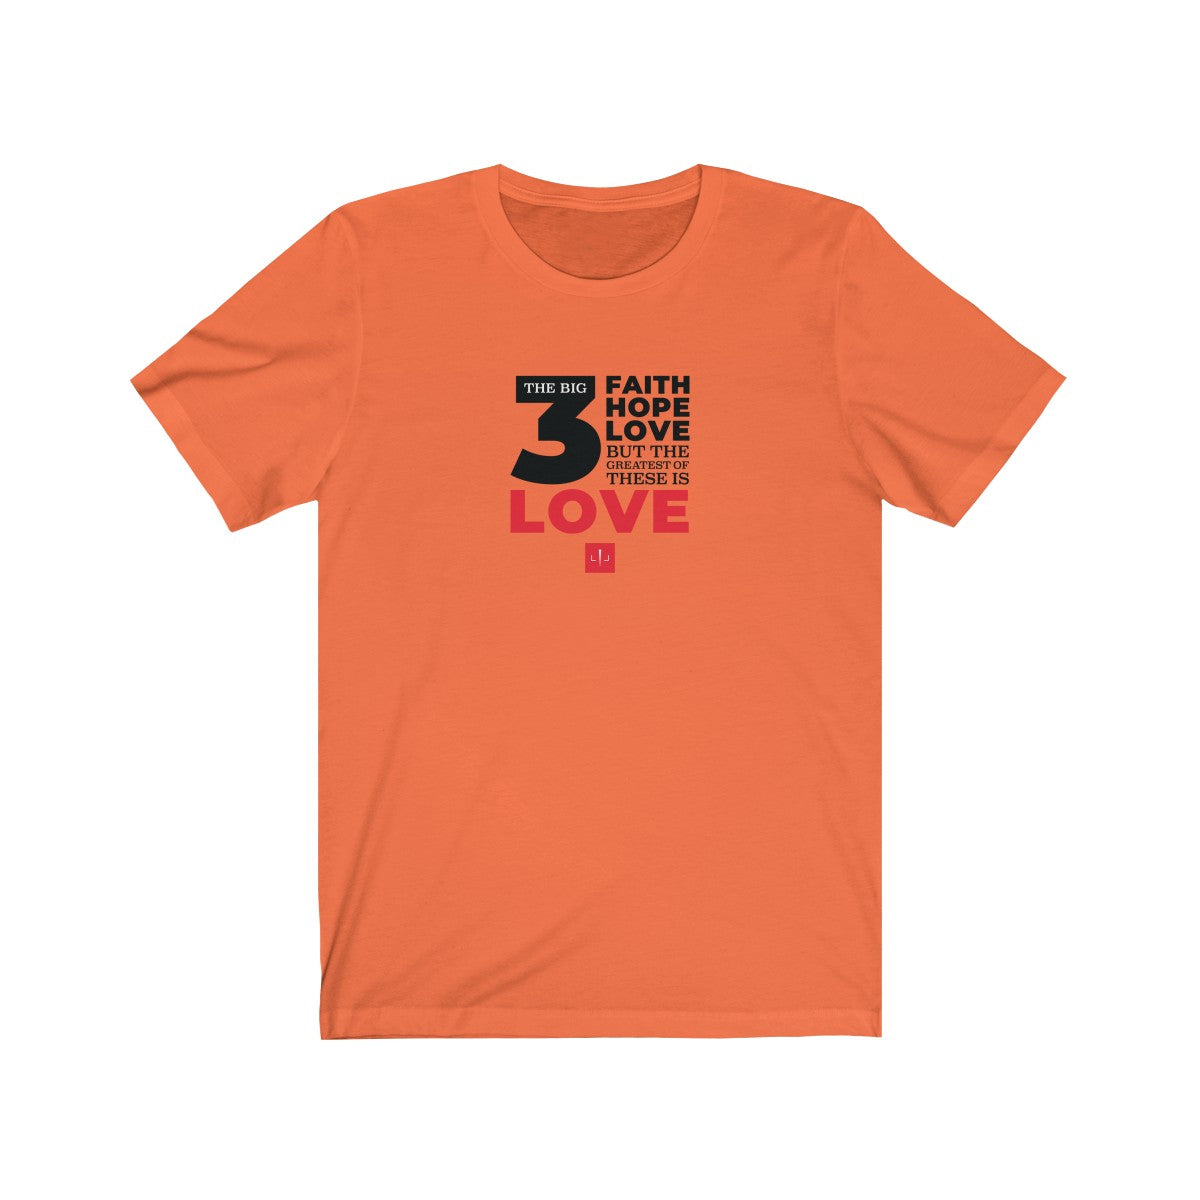 The Big 3 Unisex Jersey Short Sleeve Tee - LIGHT COLORS